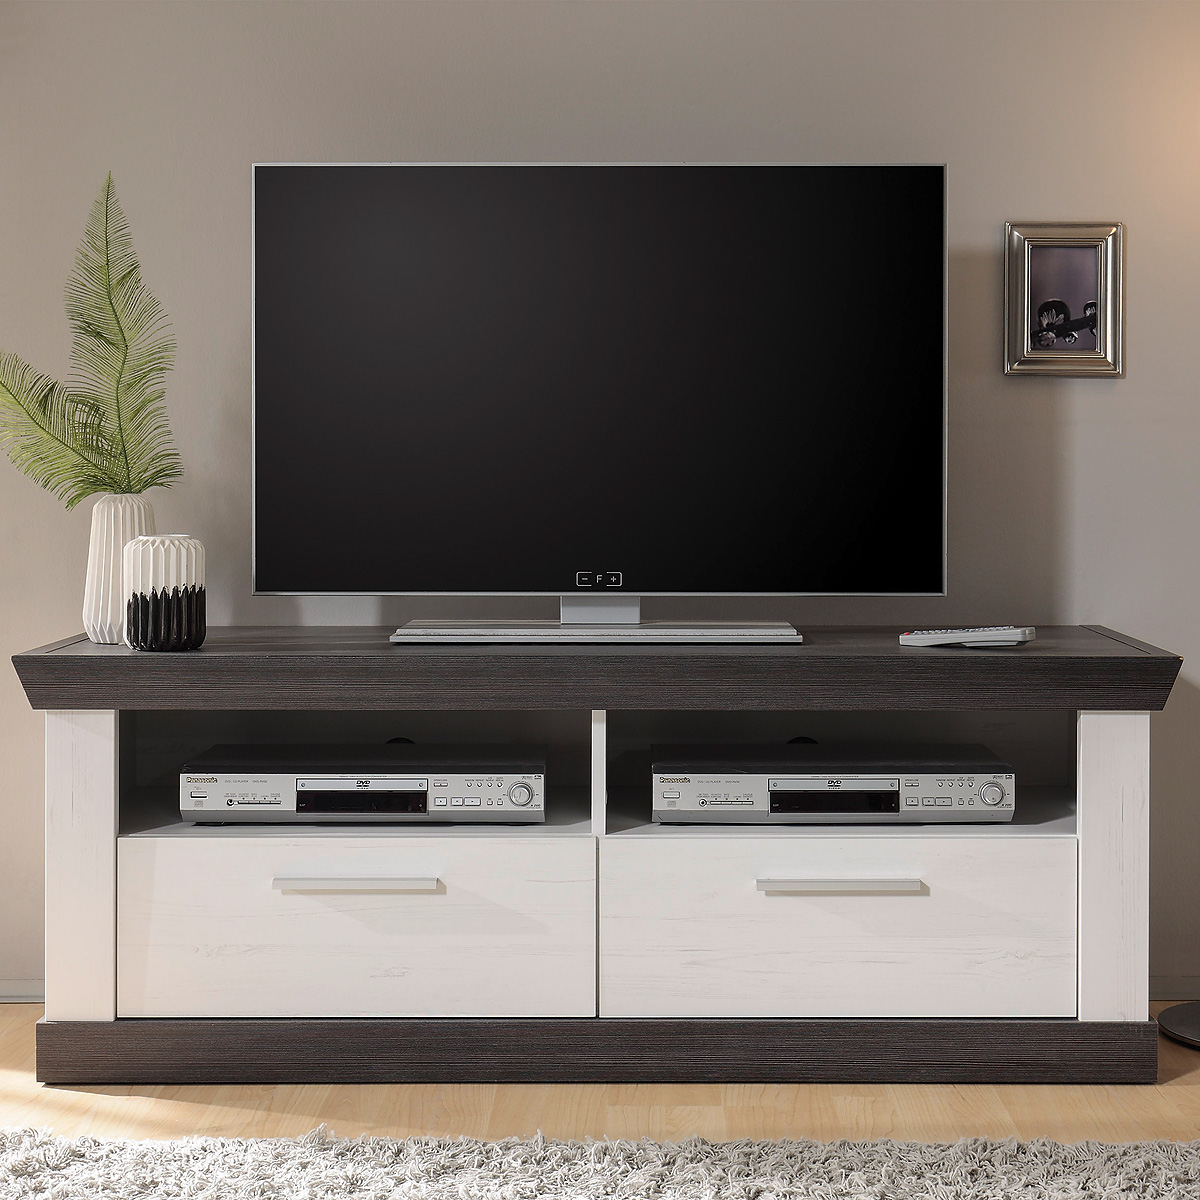 lowboard tiena tv board fernsehschrank unterschrank in. Black Bedroom Furniture Sets. Home Design Ideas